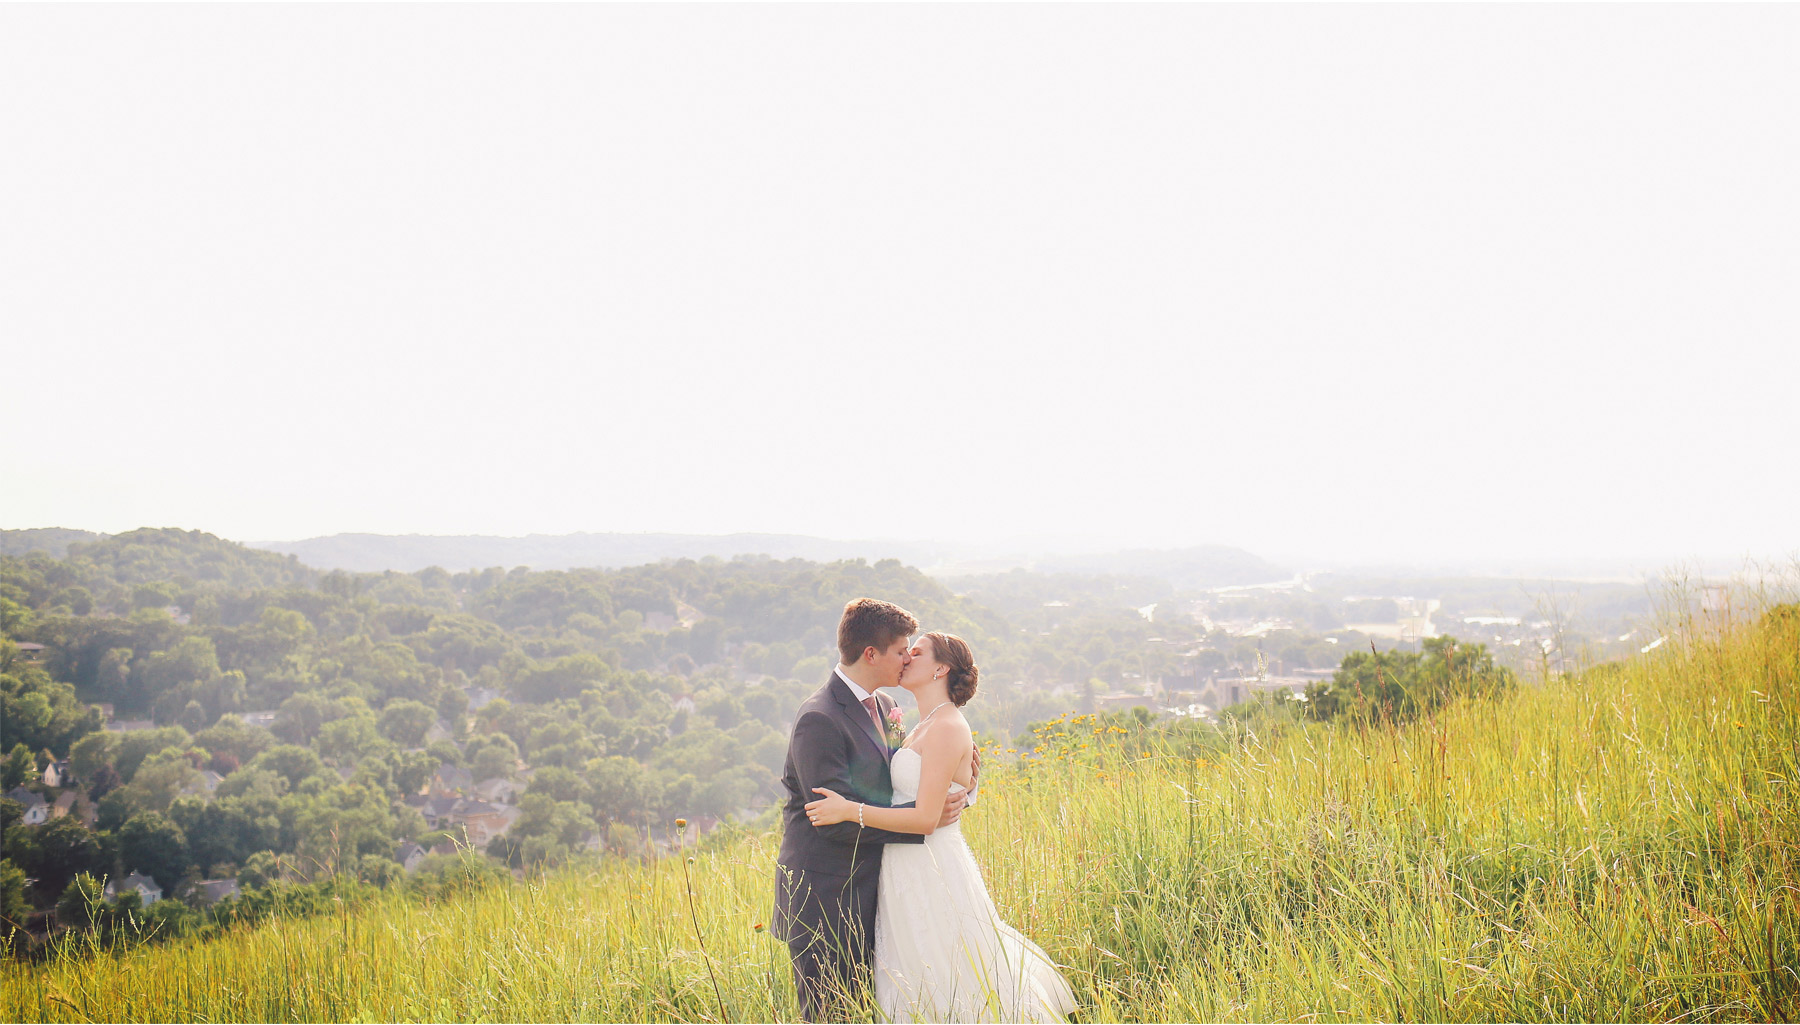 15-Red-Wing-Minnesota-Wedding-Photography-by-Vick-Photography-Round-Barn-Farm-Great-View-Bluffs-Field-Nikki-and-Will.jpg